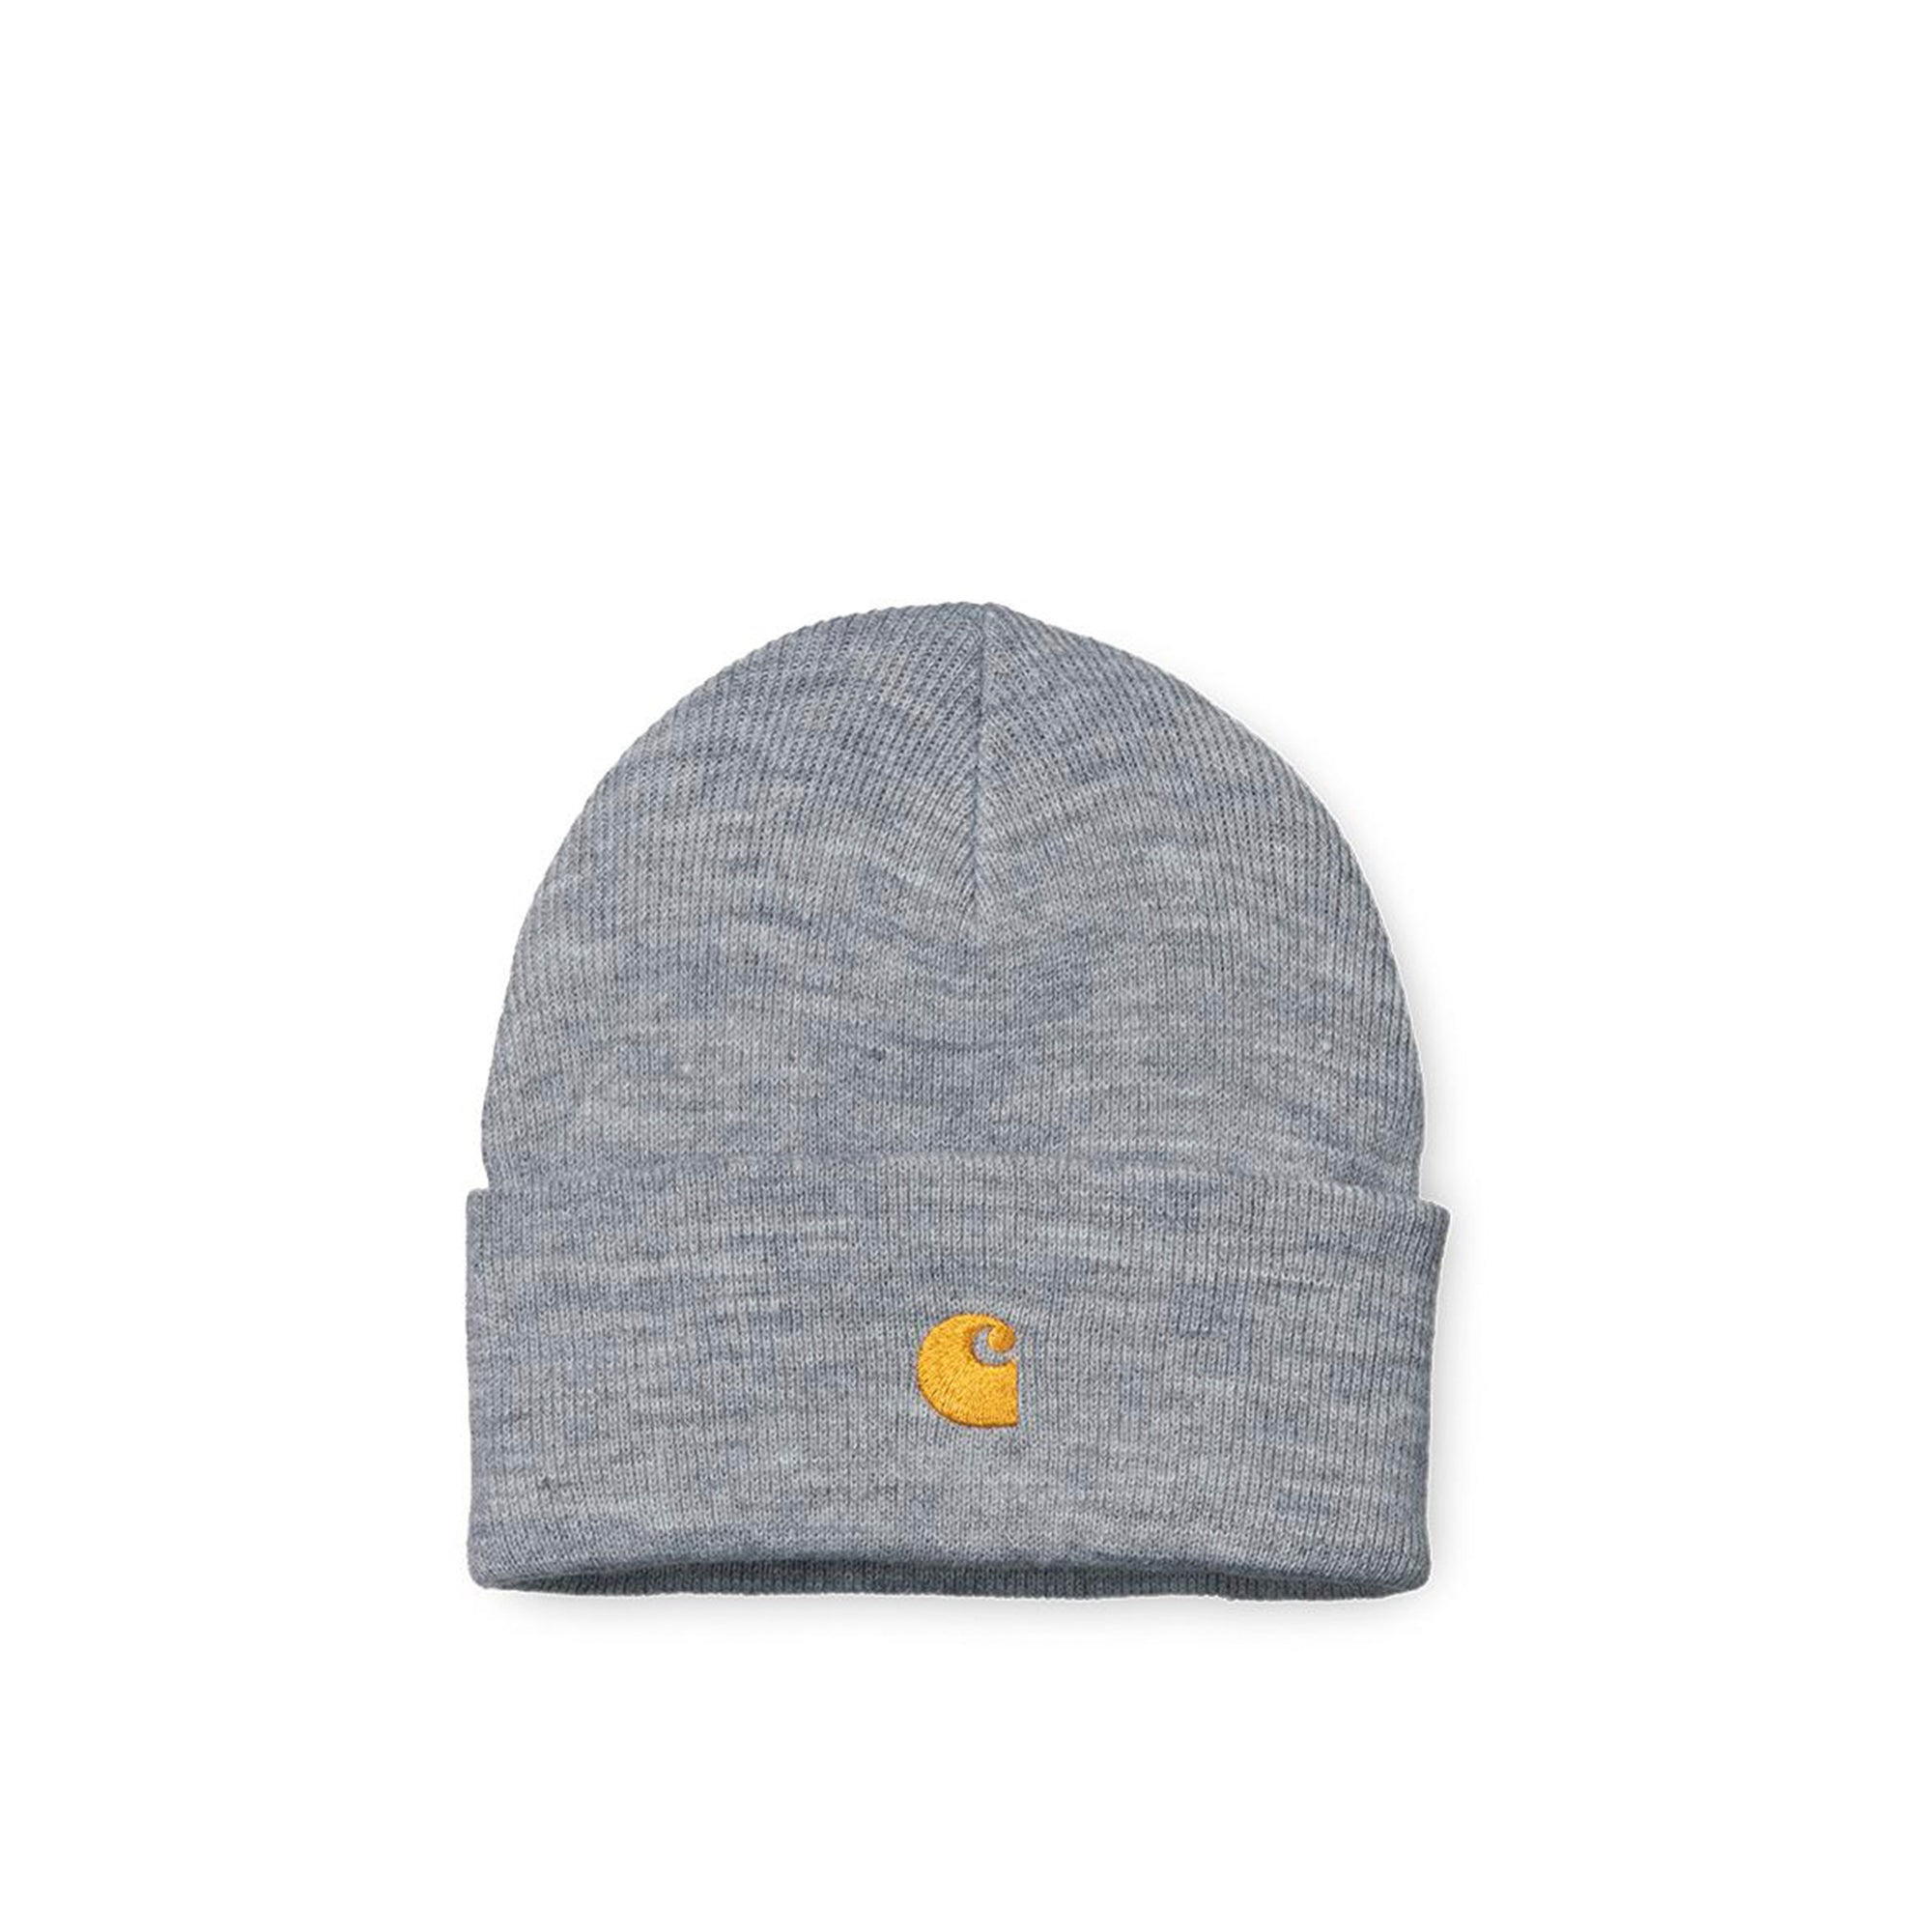 Carhartt WIP Chase Beanie: Grey Heather / Gold - The Union Project